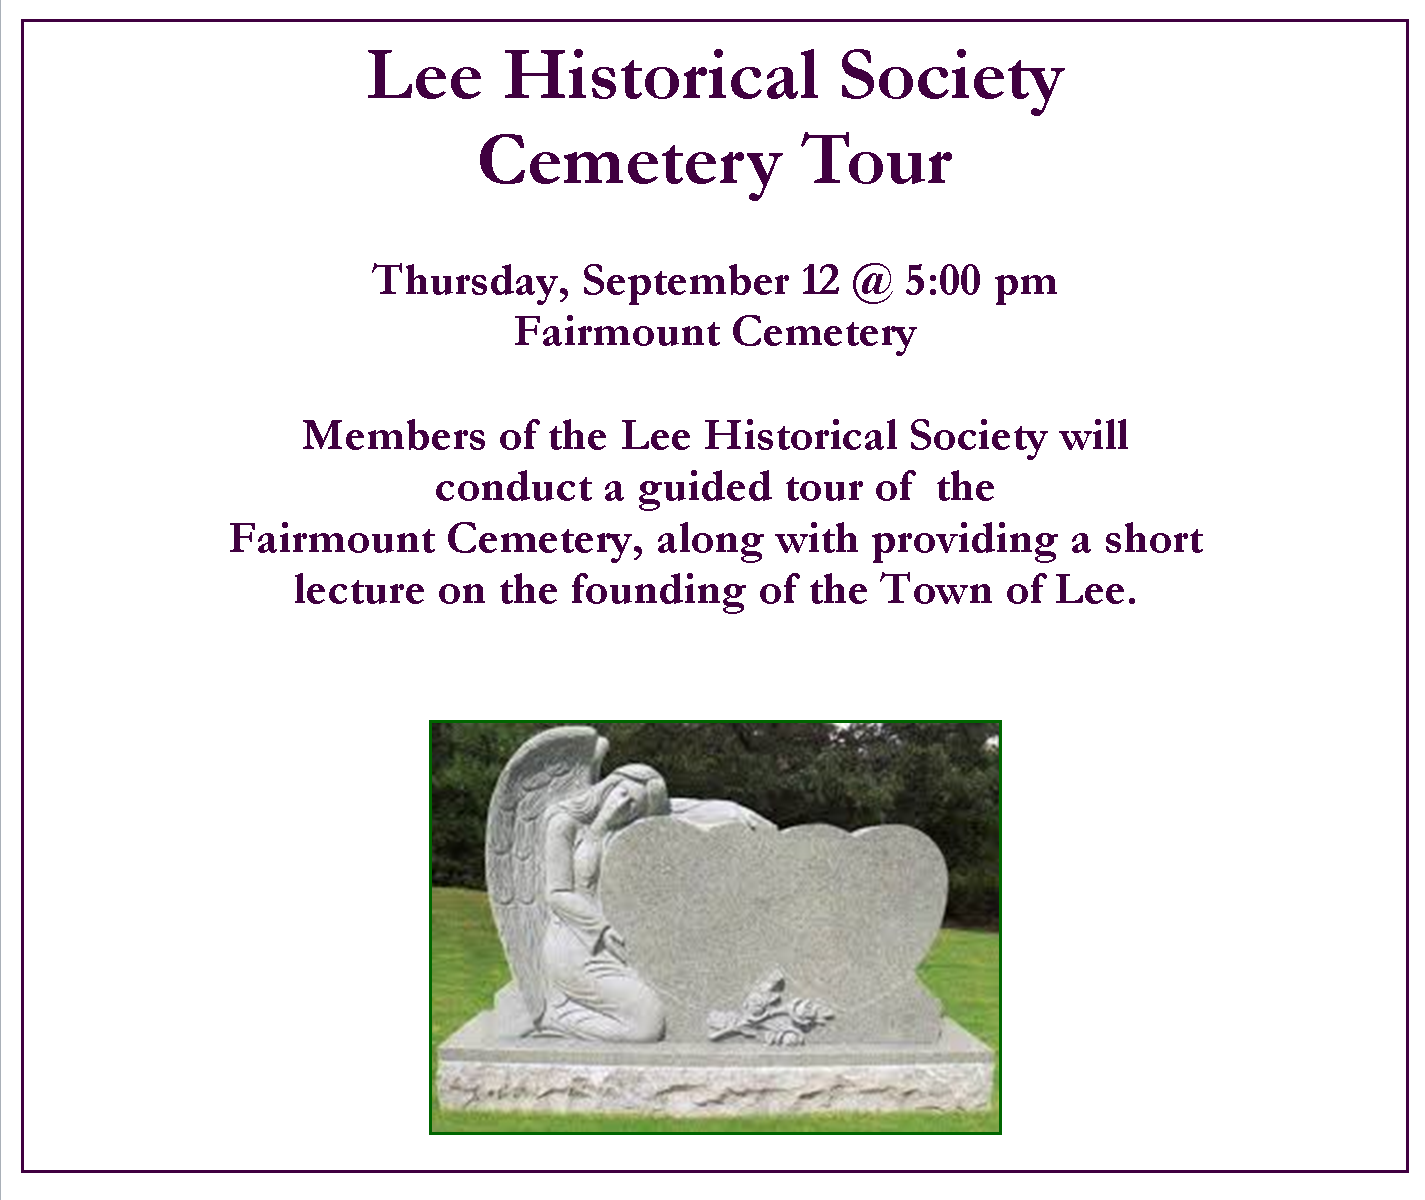 Lee Historial Society Fairmount Cemetery Tour